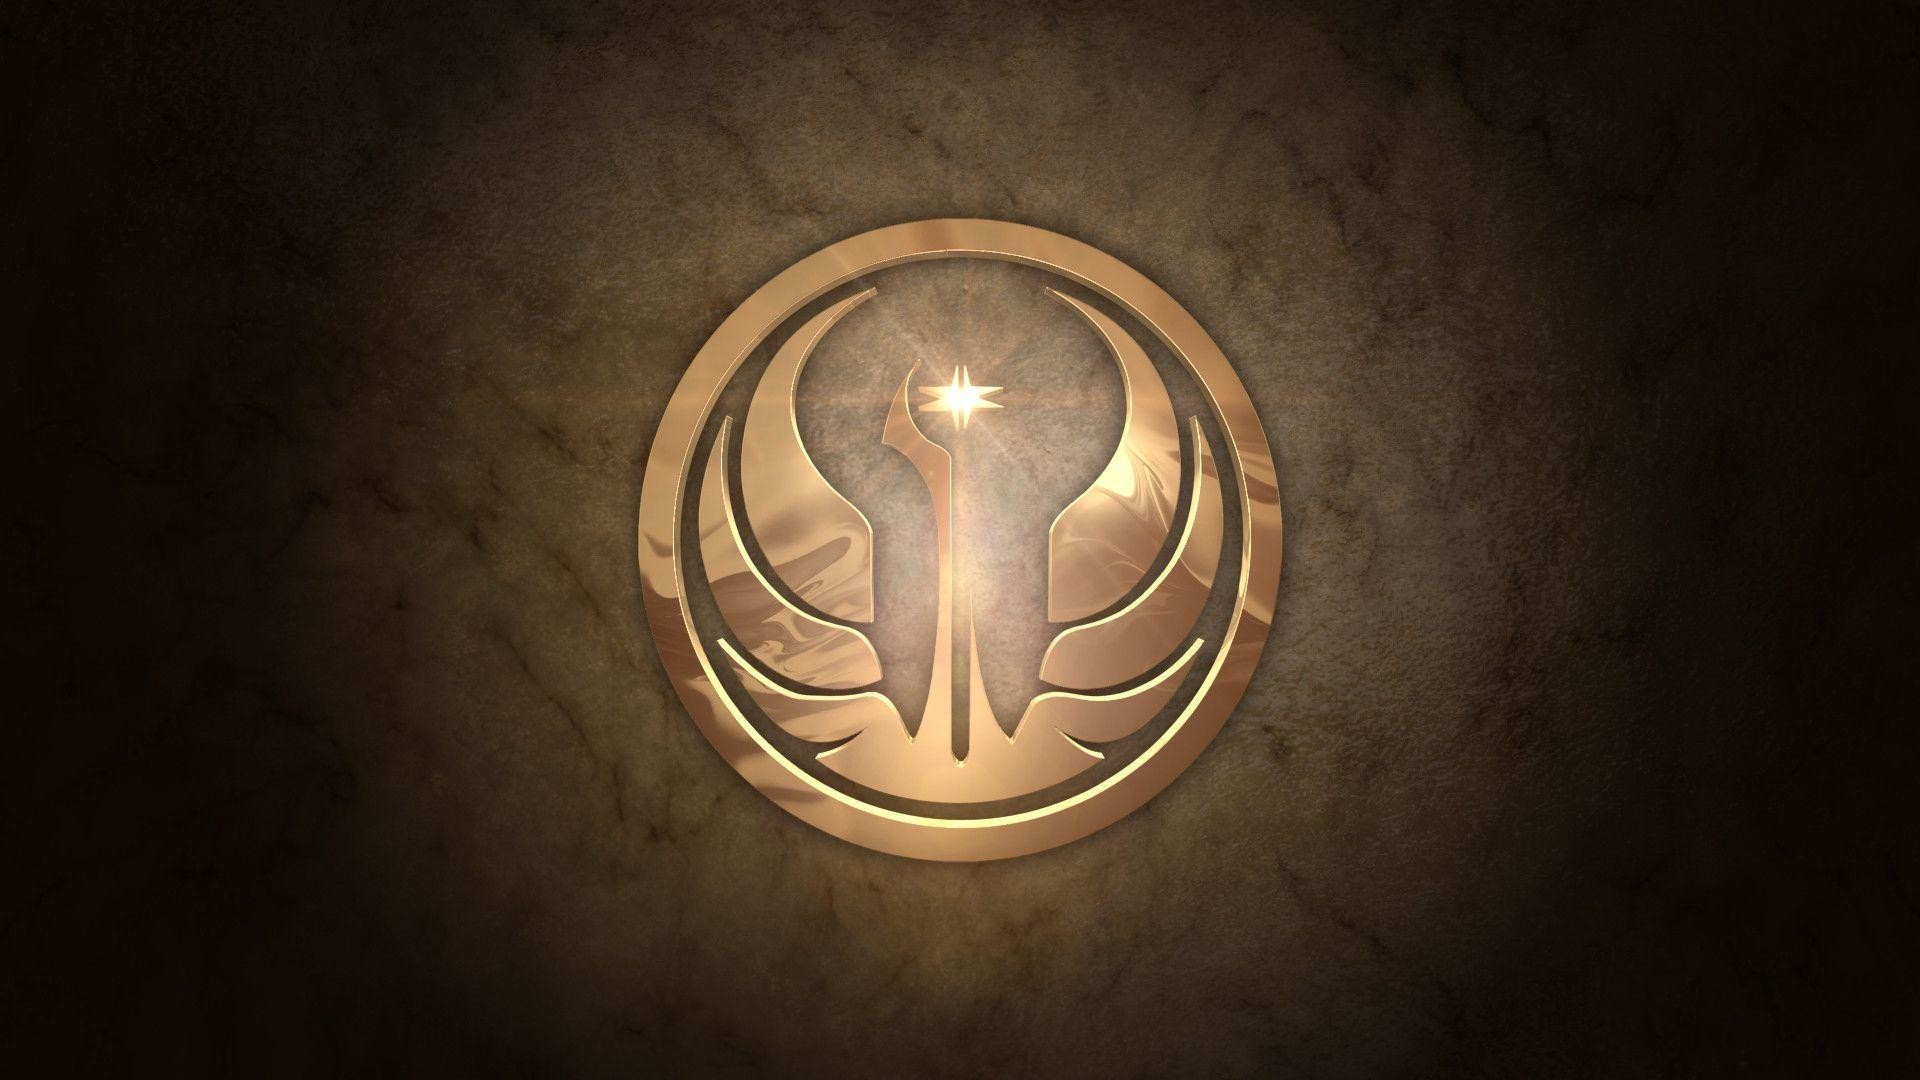 Sat 25 Apr 2015 <b>Swtor HD Backgrounds</b> for <